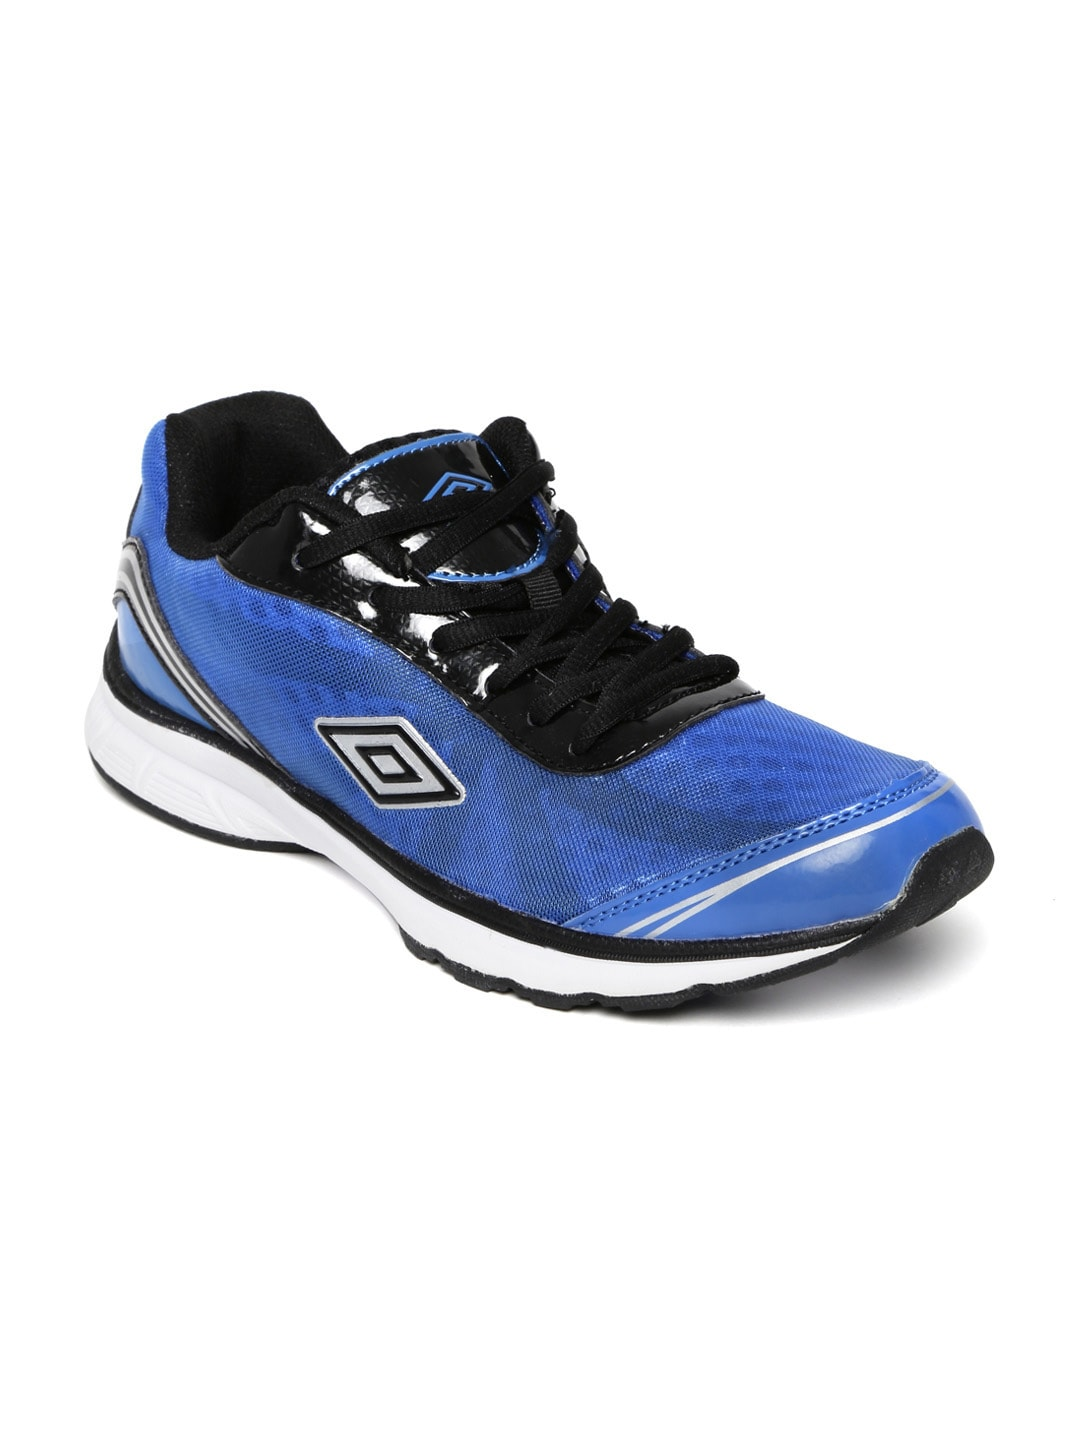 Umbro Umbro Men Blue Sports Shoes